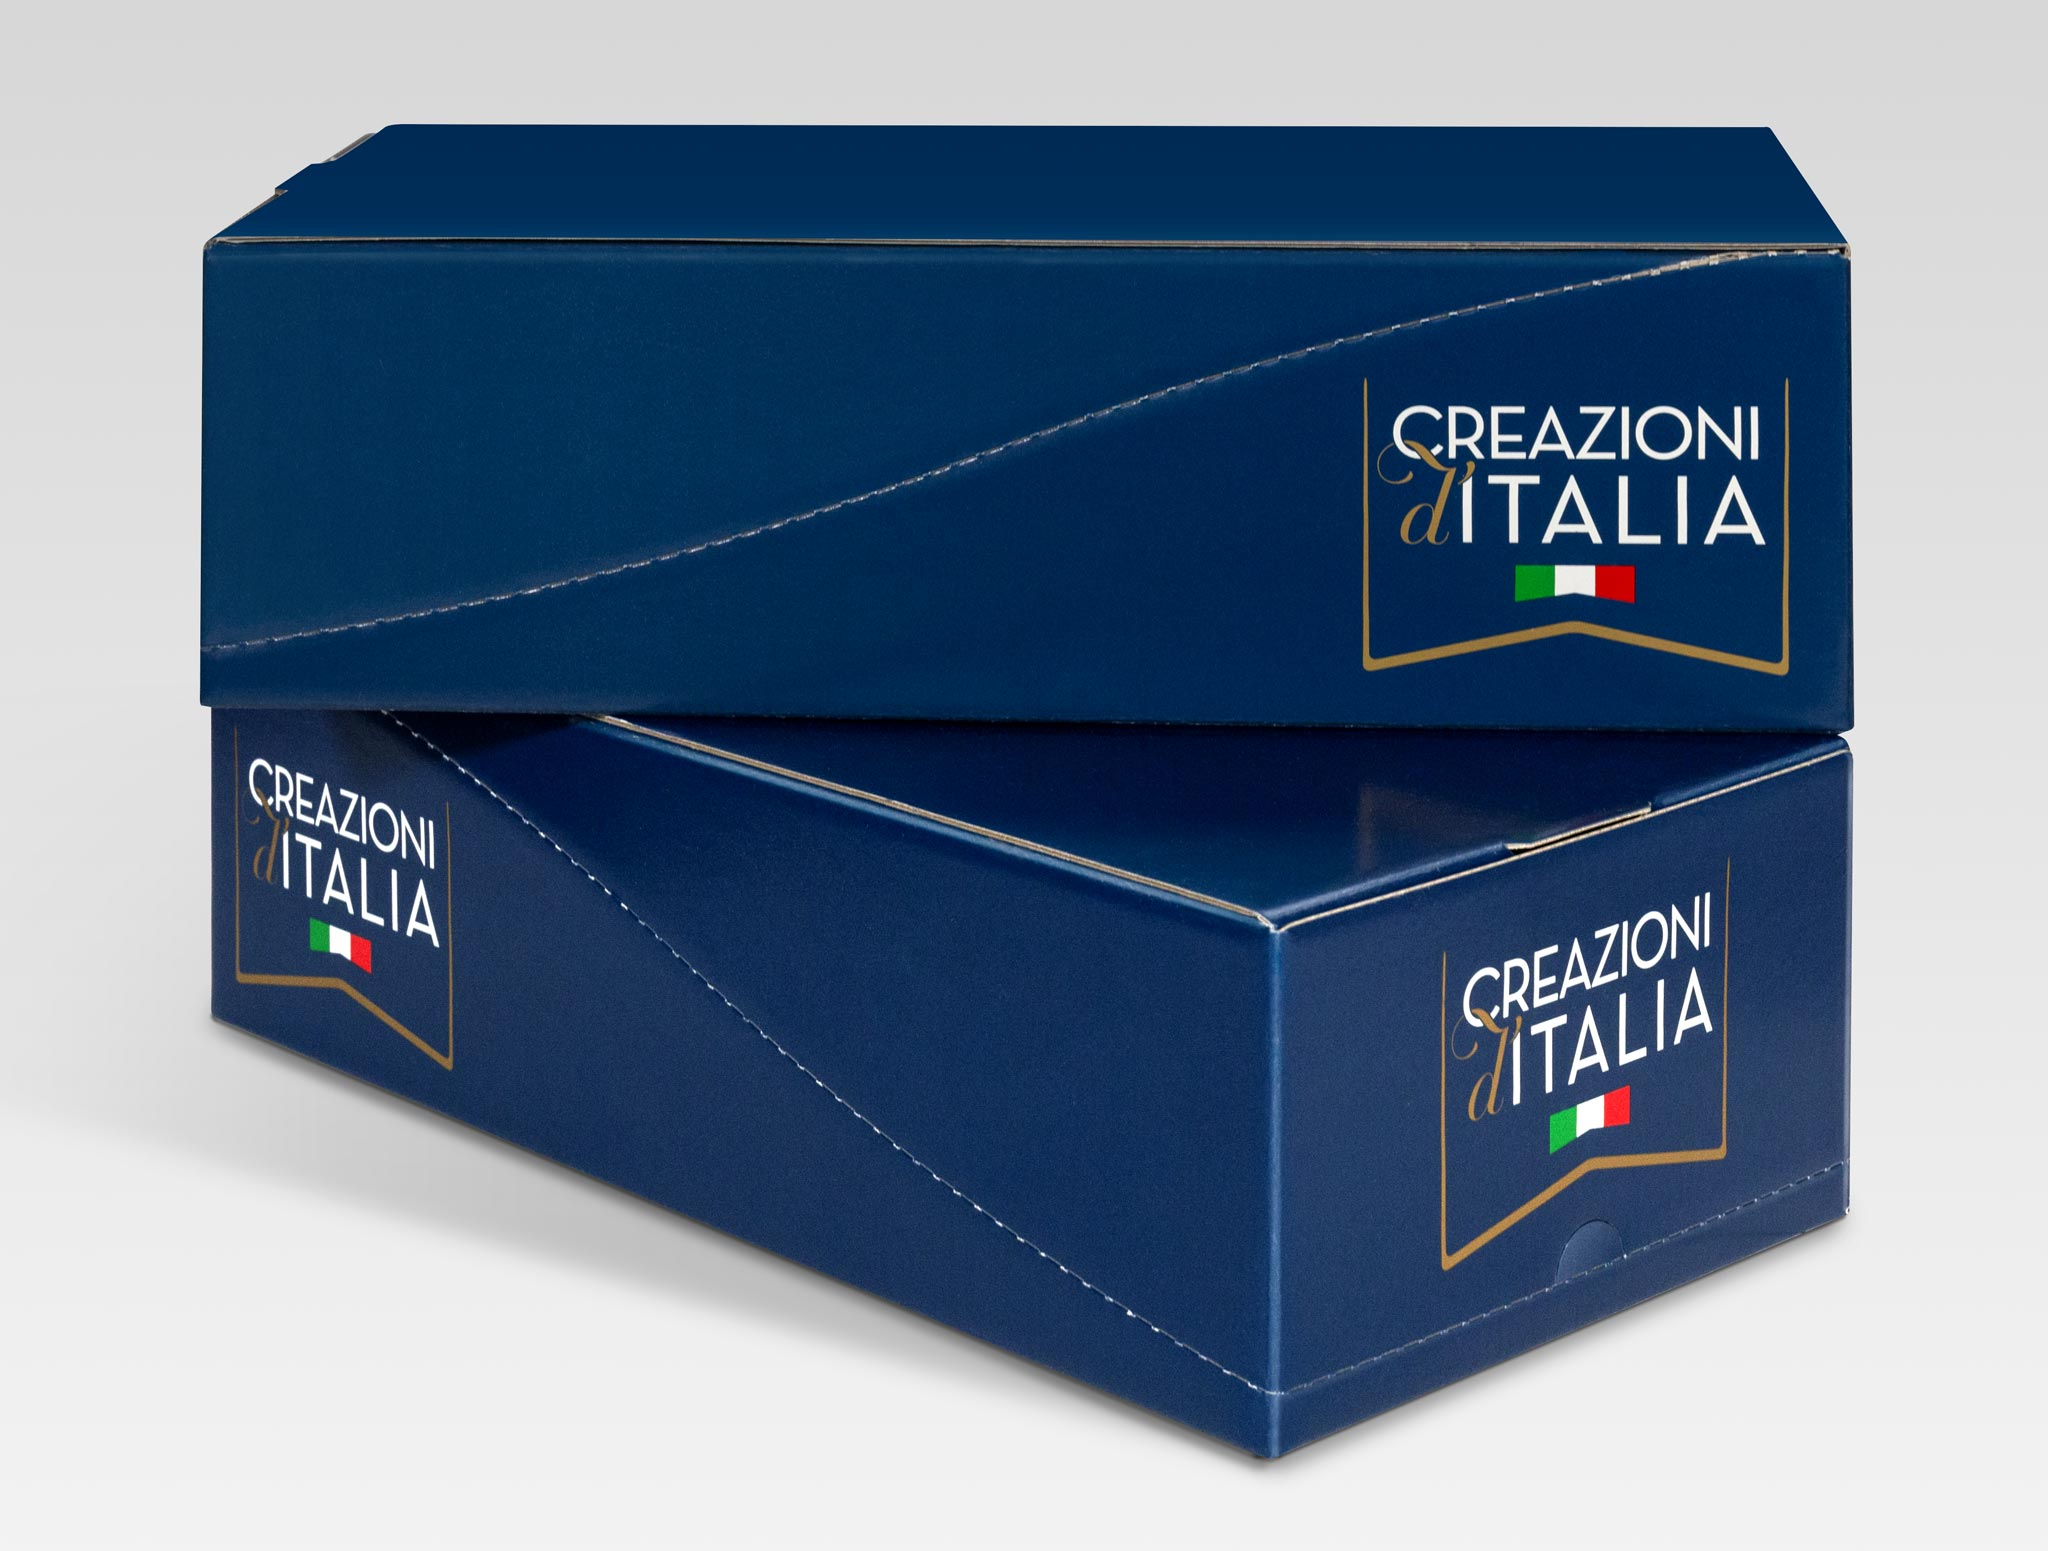 Creazioni d'Italia - Packaging / Espositore da banco